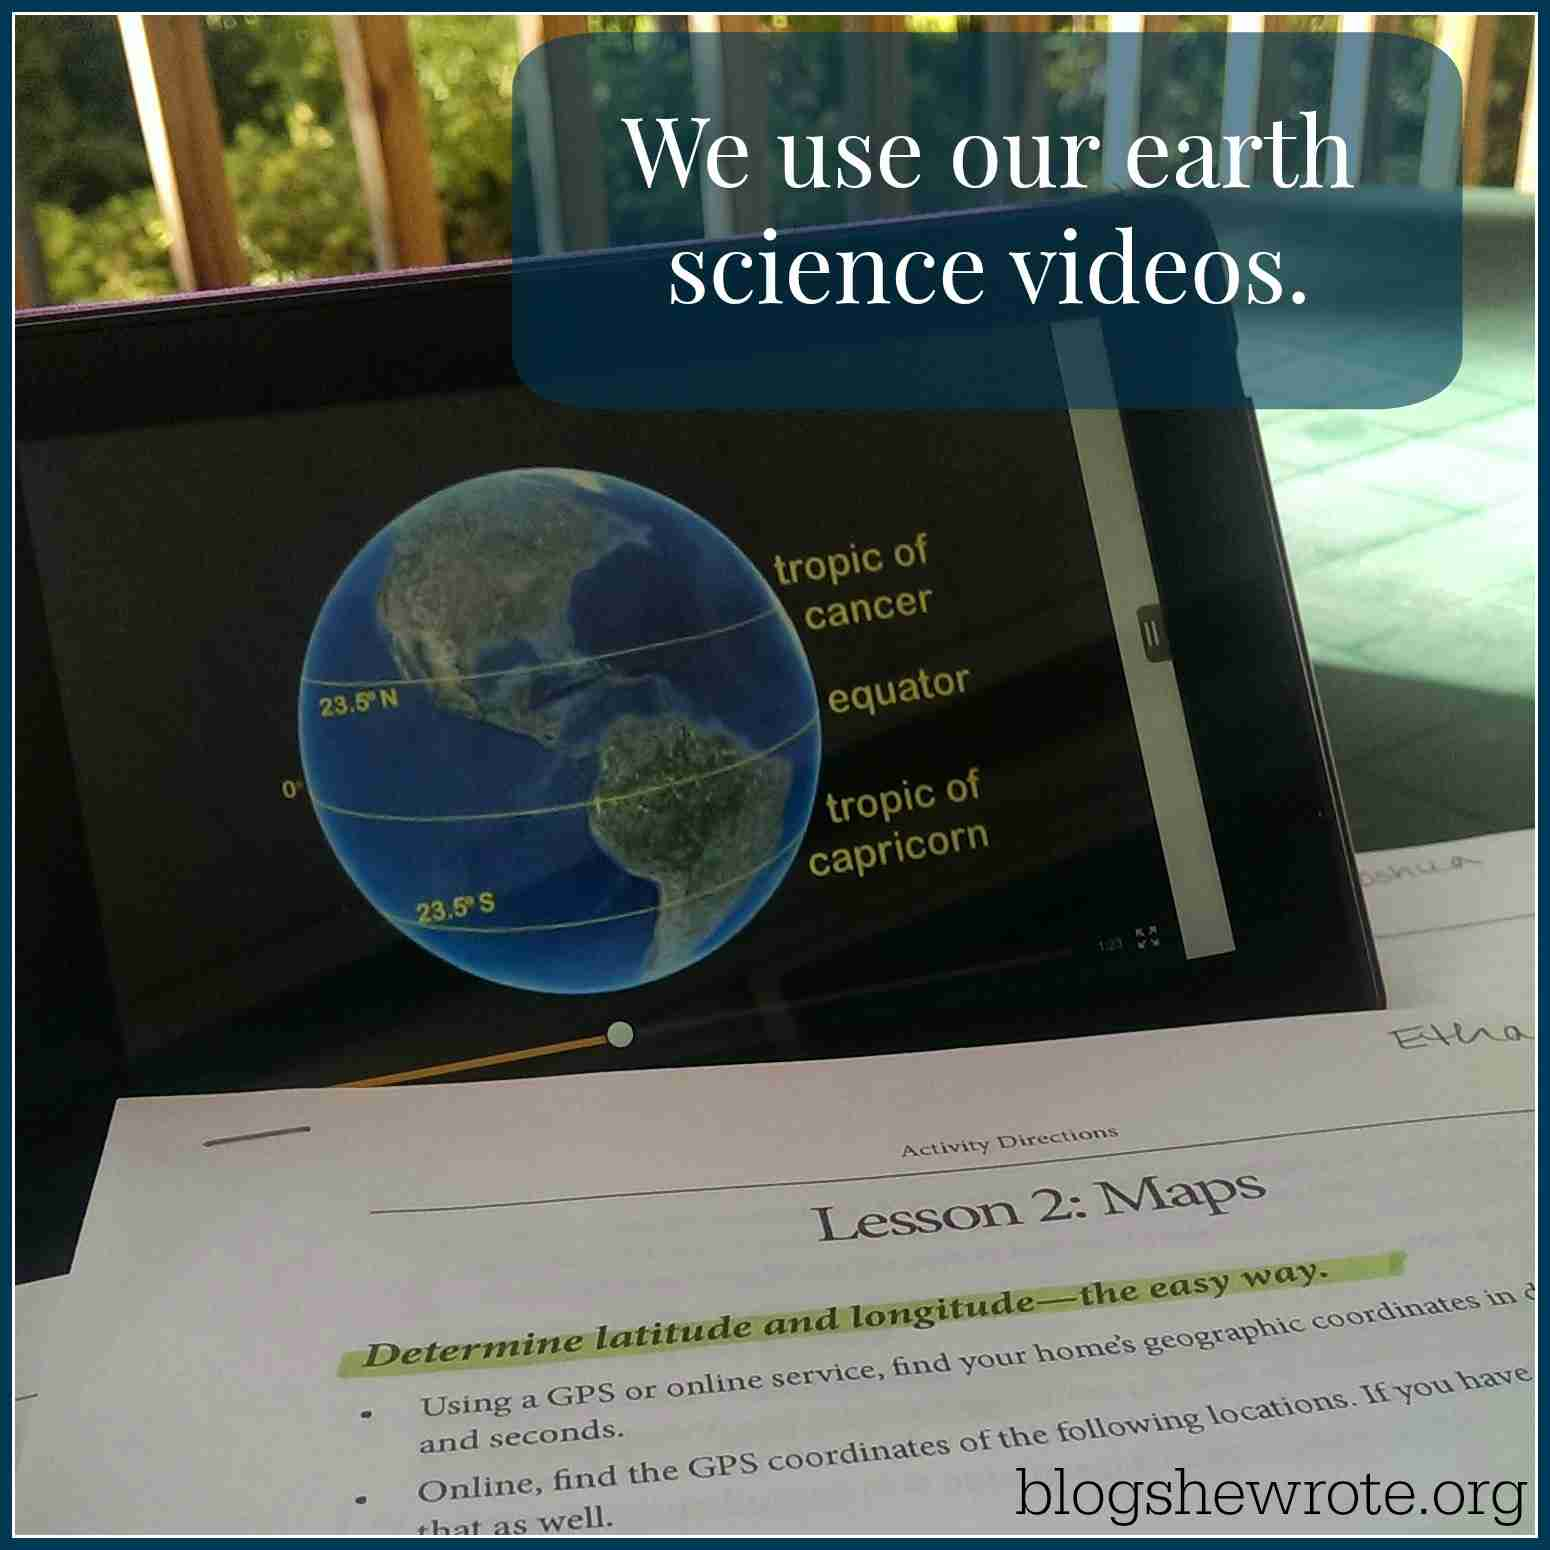 Blog, She Wrote: Teaching Geography with Earth Science